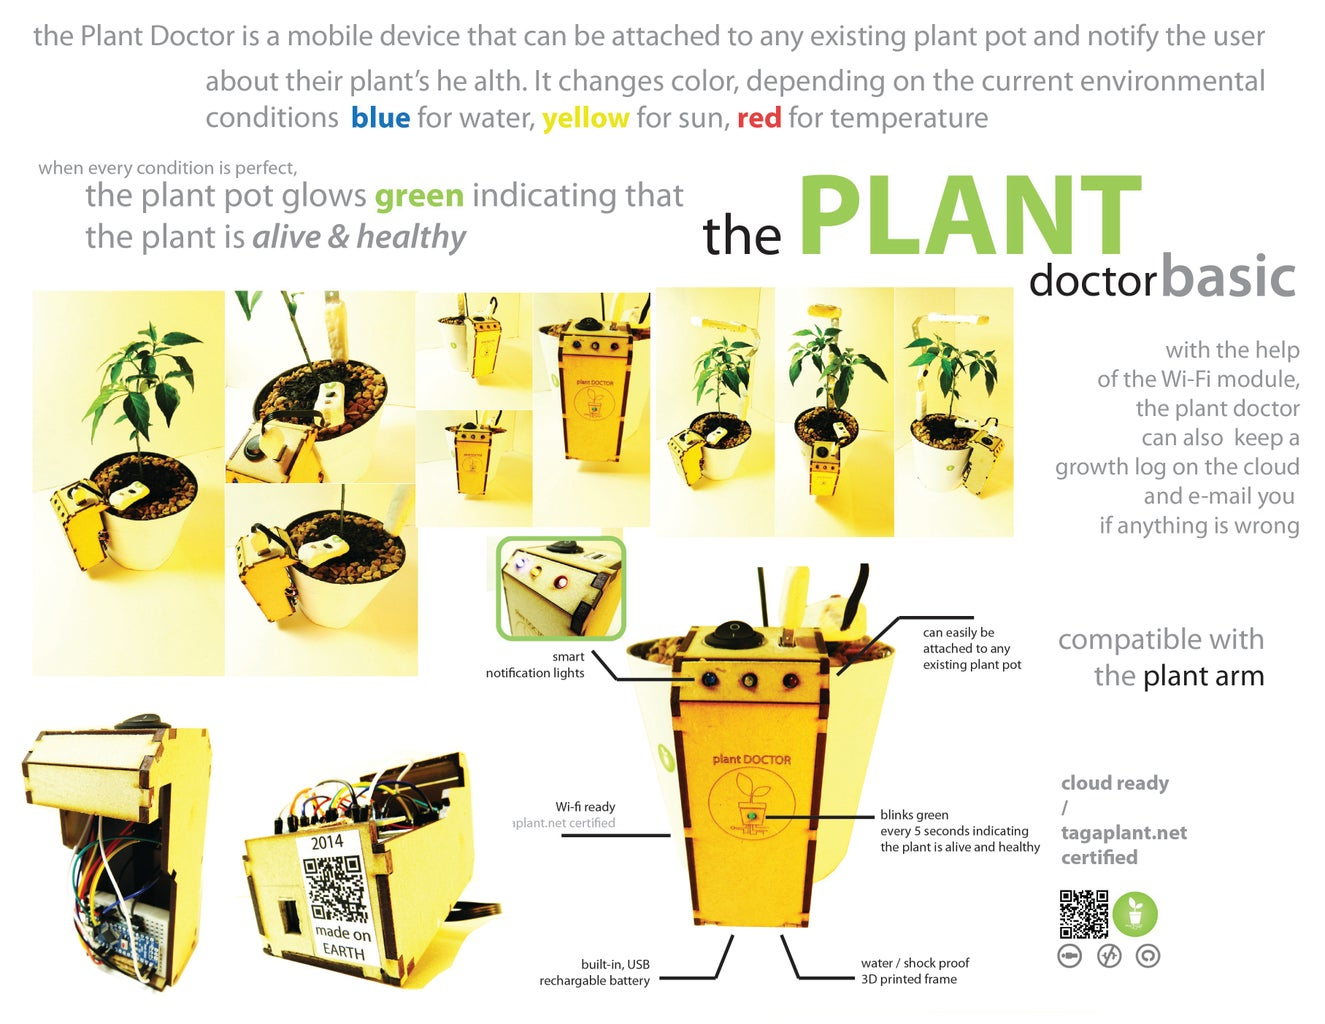 The Plant Doctor Basic